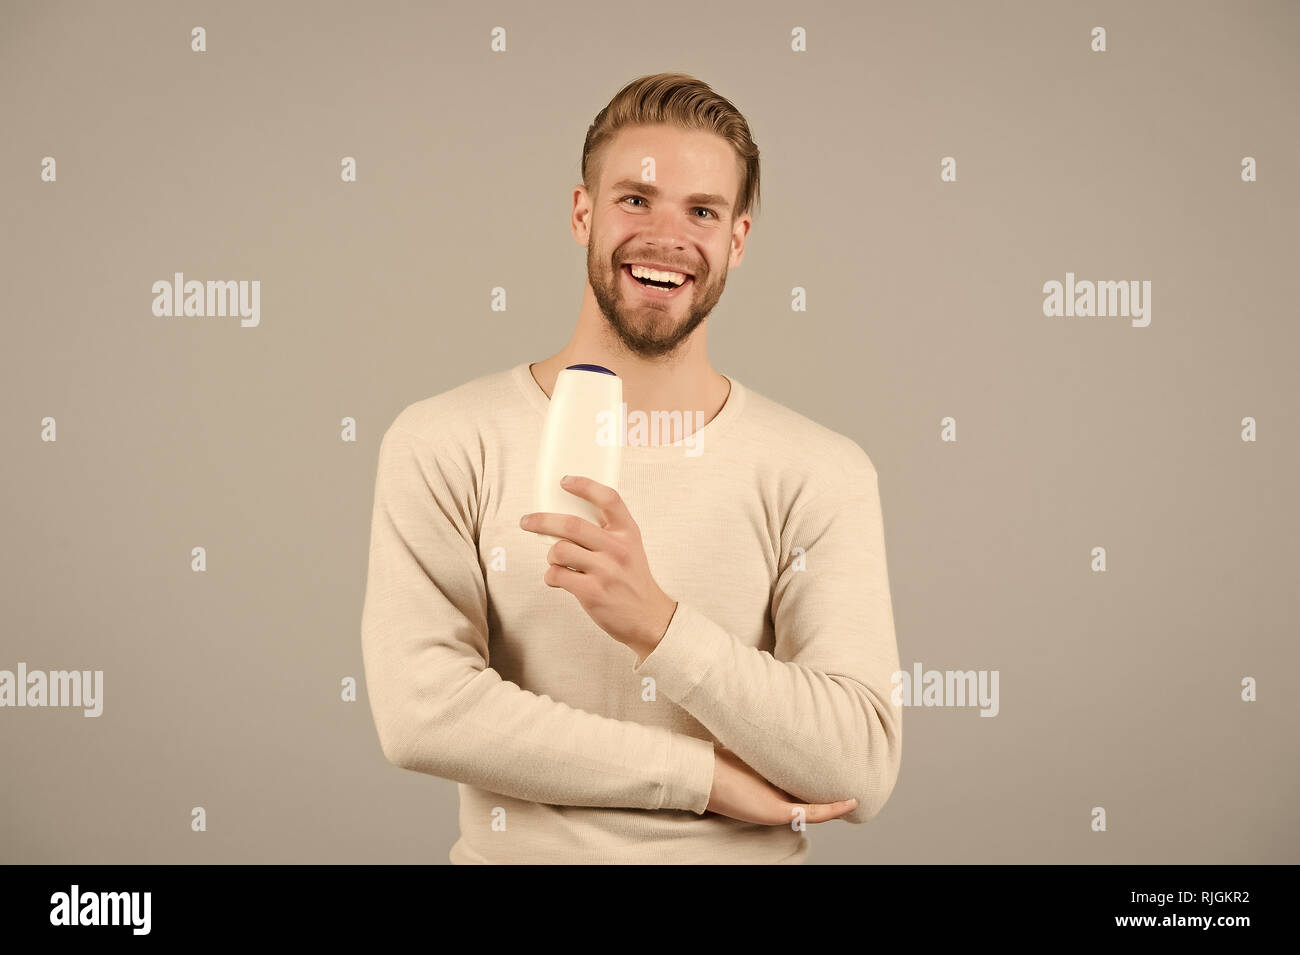 Hair care and beauty supplies concept. Man happy face holds shampoo bottle, grey background. Guy with bristle holds bottle shampoo, copy space. Man enjoy freshness after washing hair with shampoo. Stock Photo